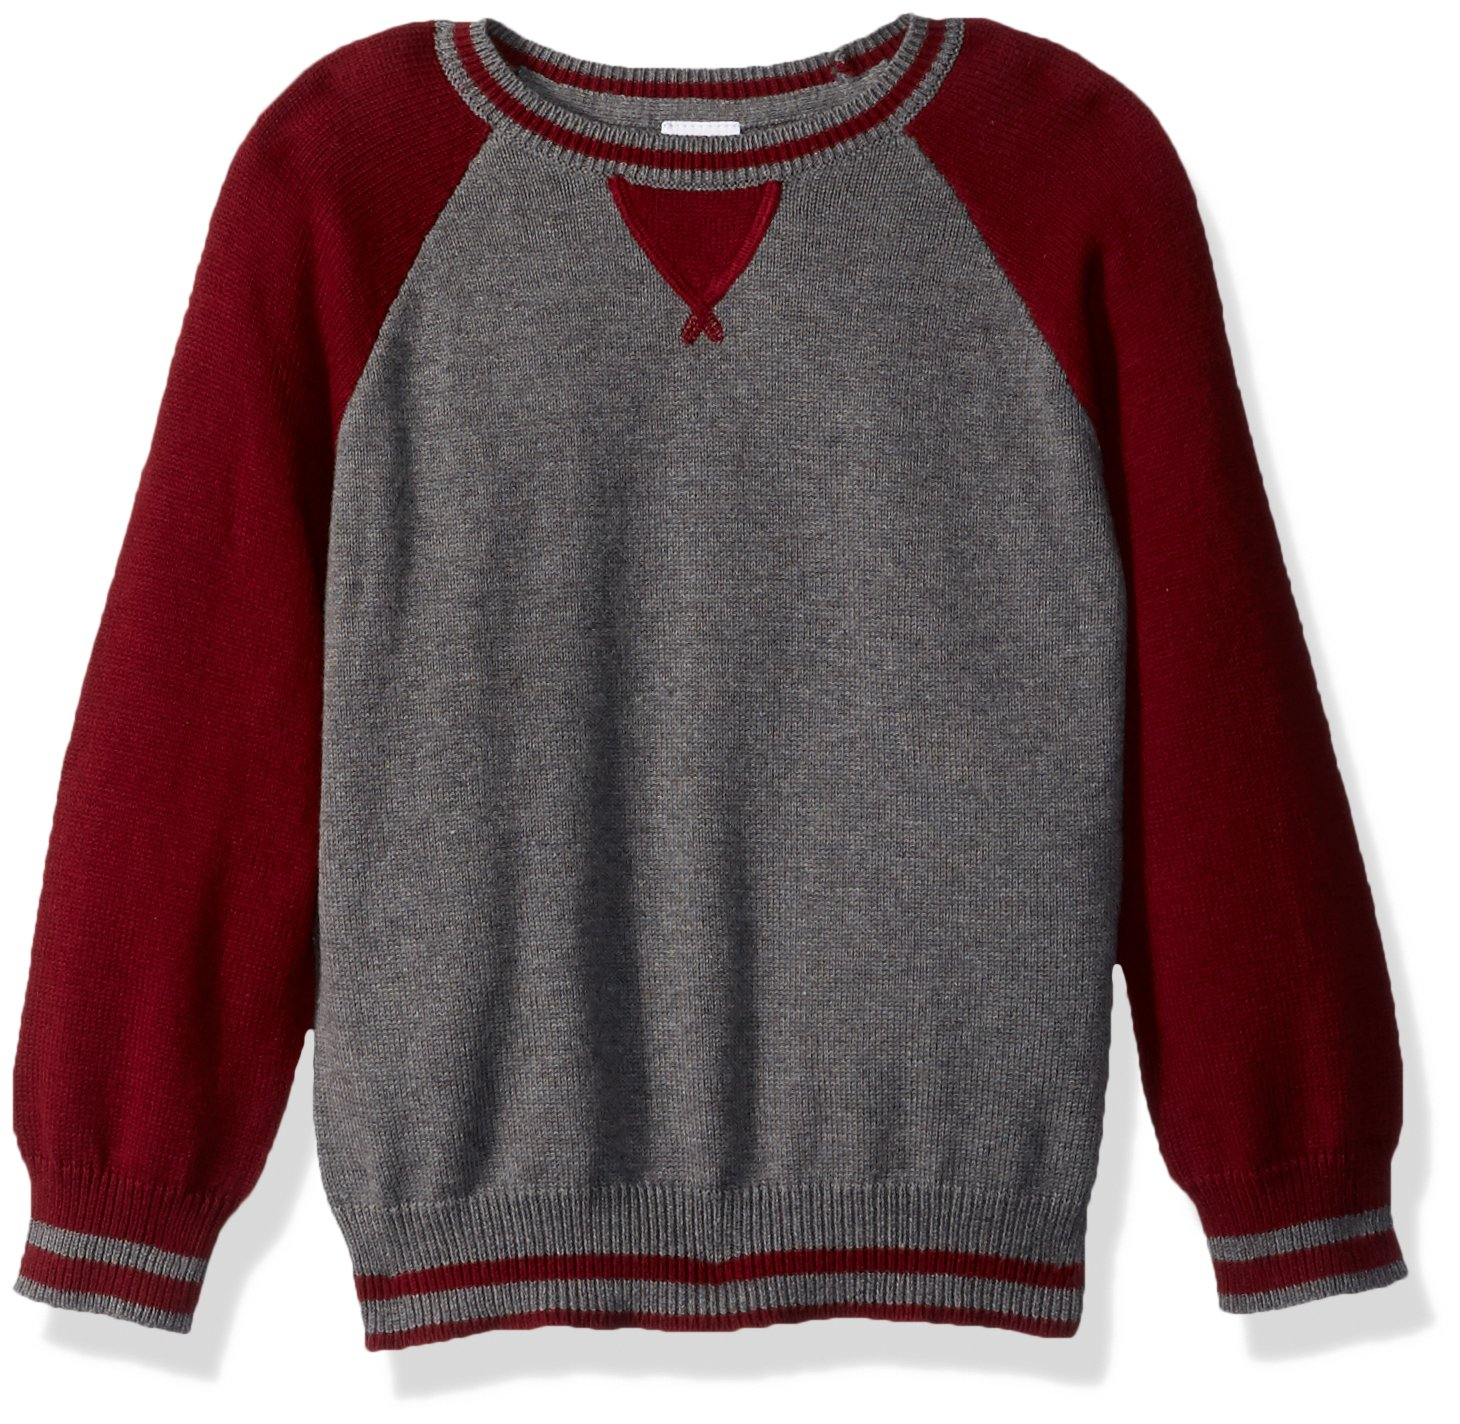 Gymboree Little Boys' Blocked Raglan Sweater, Moto Maroon, M